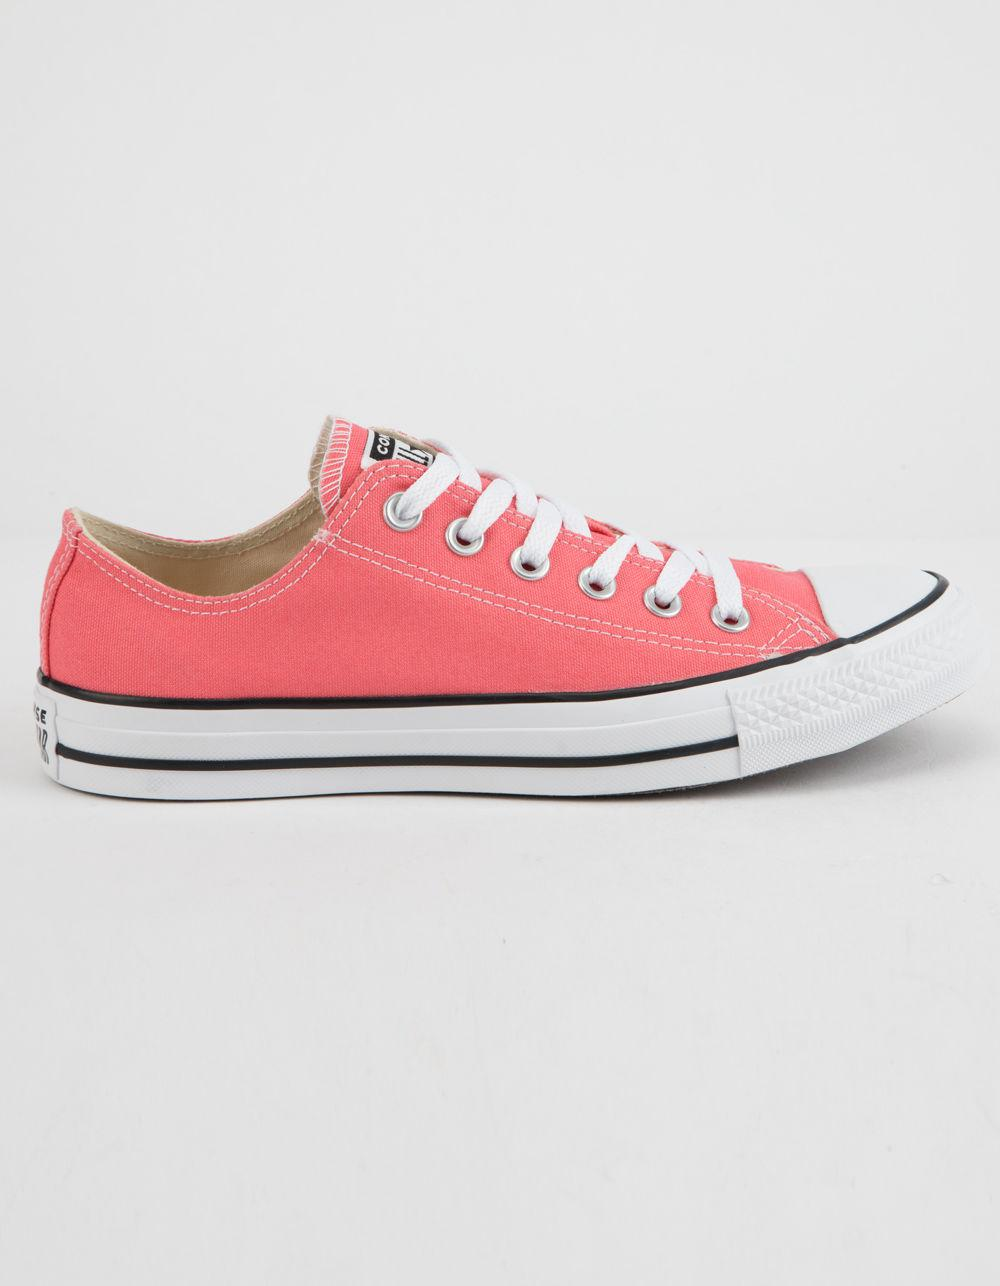 09be4ef8a9e1 converse-PUNCH-CORAL-Chuck-Taylor-All-Star-Punch-Coral-Low-Top-Womens-Shoes .jpeg